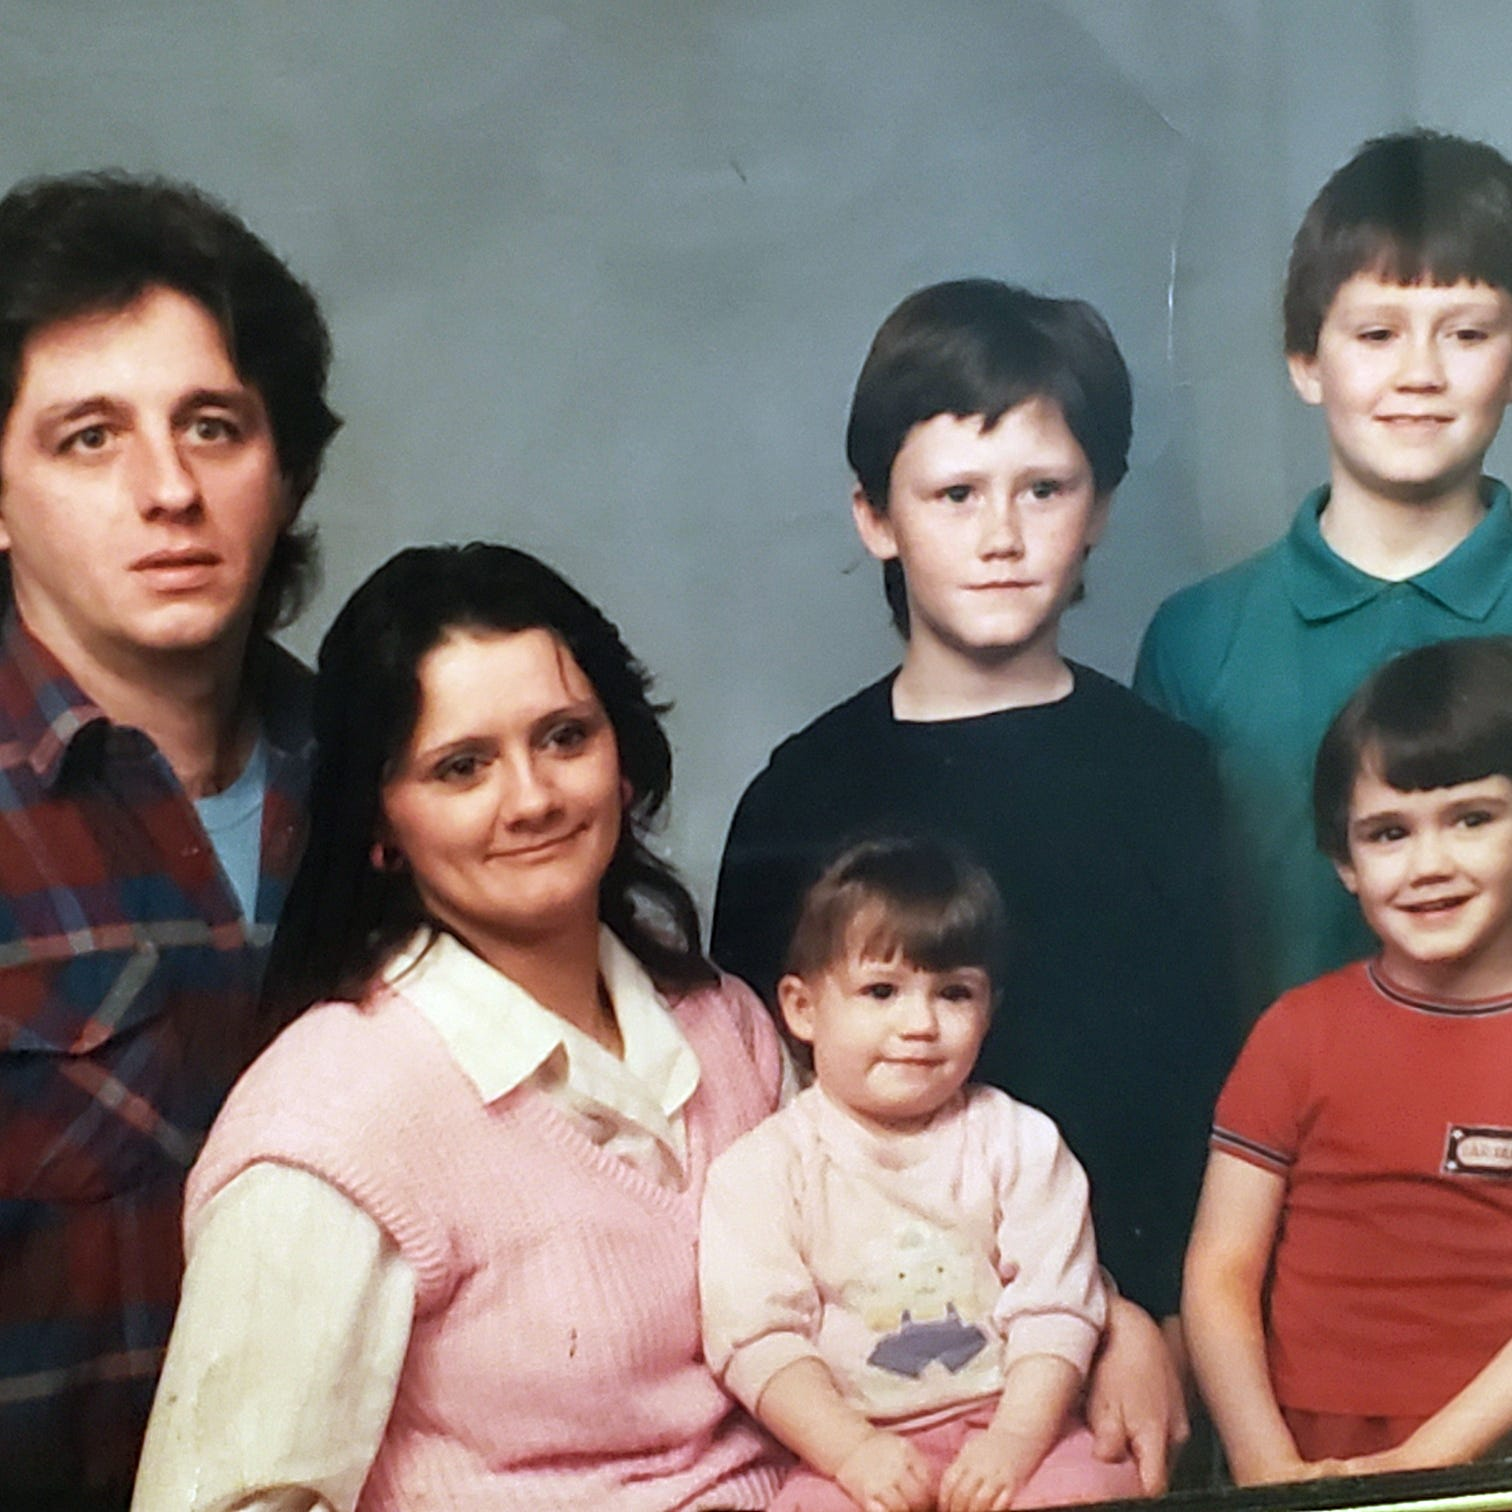 Stingl: A thin-ice accident in 1992 claimed a girl that day and now her brother 26 years later